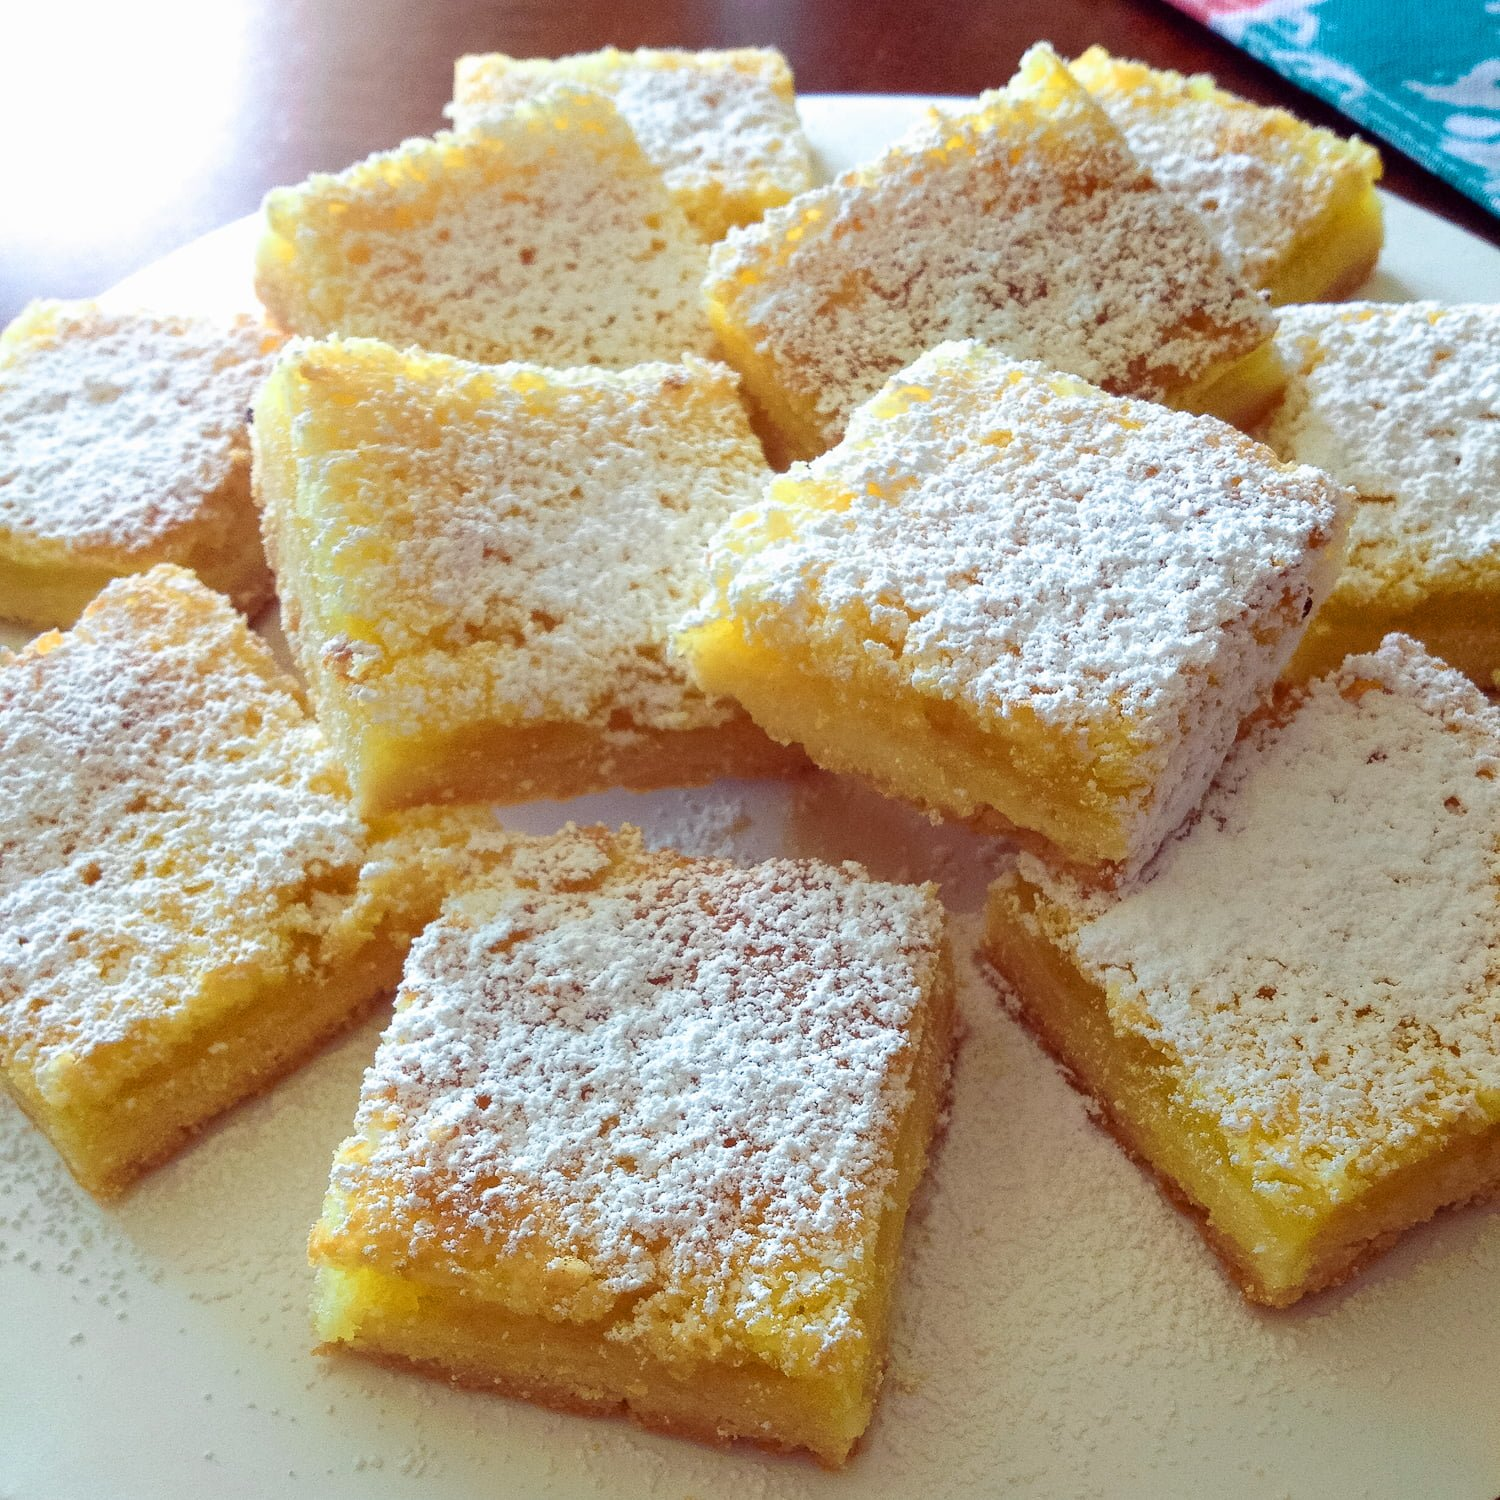 These Super Easy Lemon Bars have a serious lemon hint. Perfect with a cup of coffee or tea, this recipe is suitable for any ocassion.